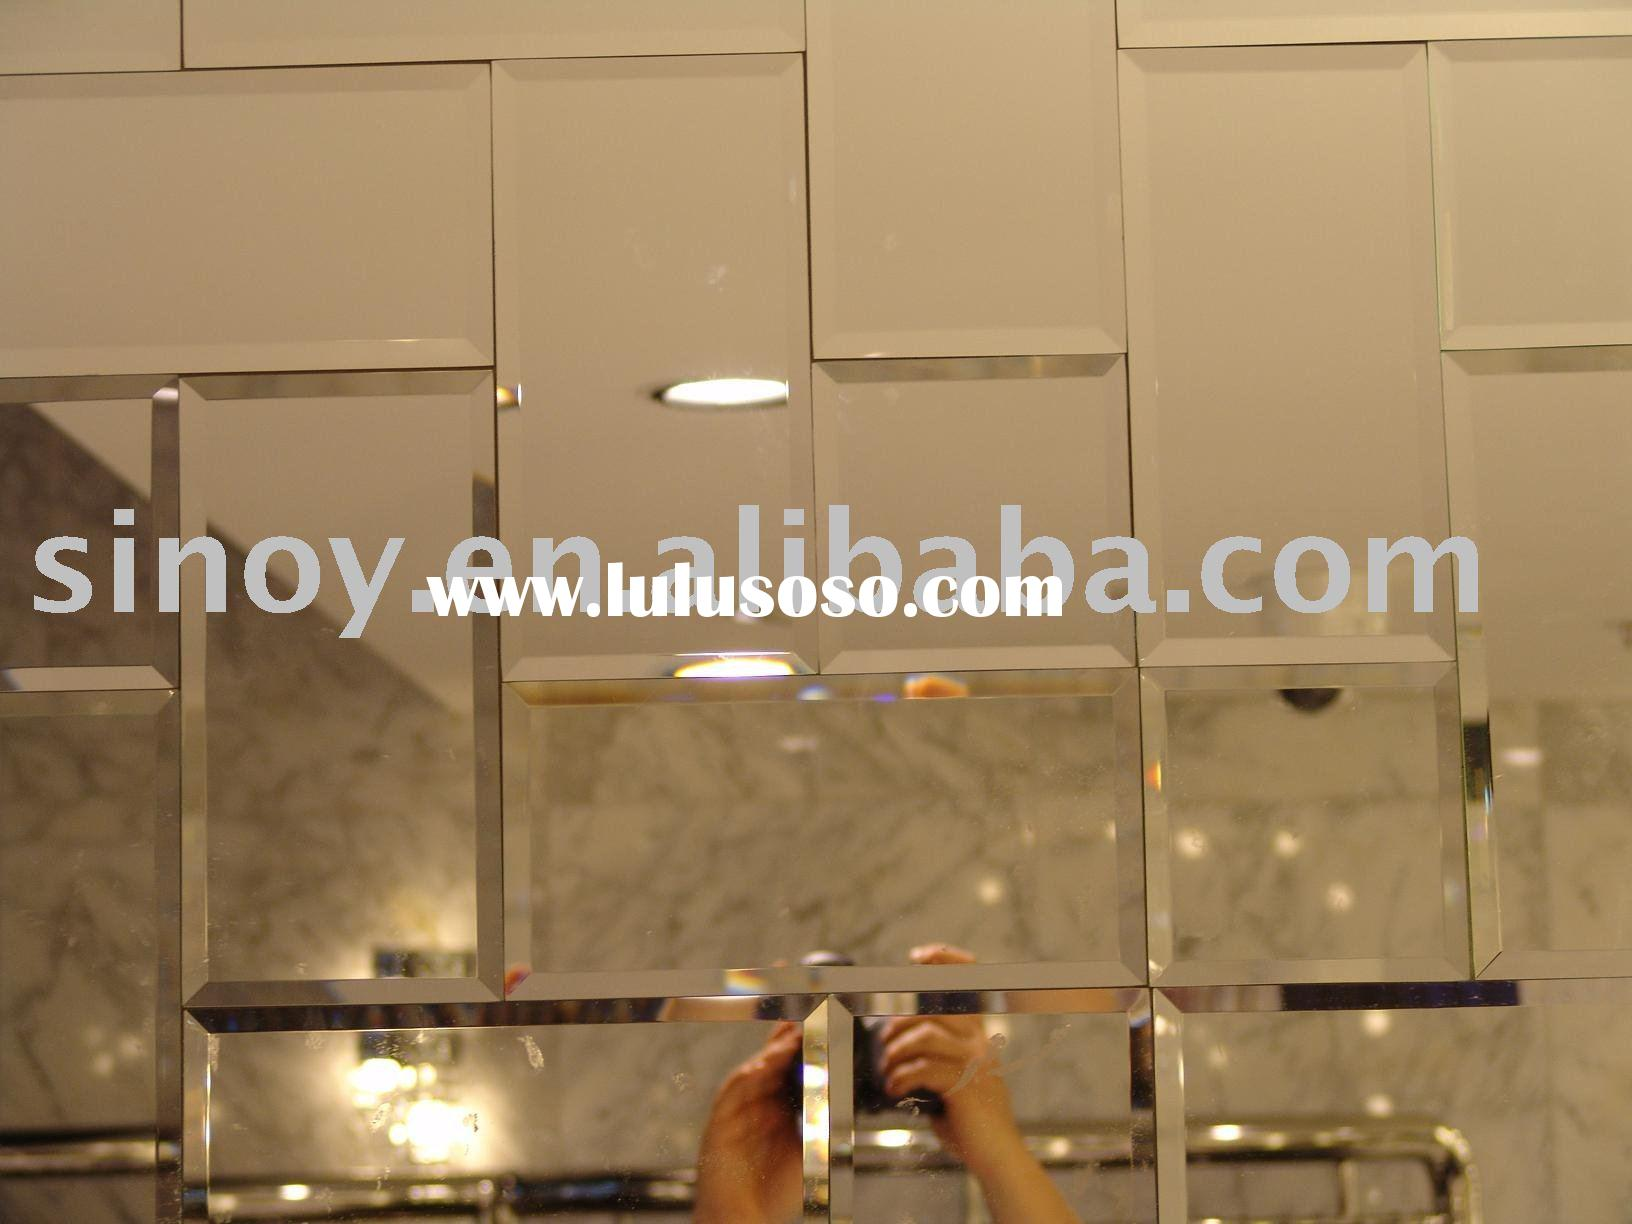 Fashionable Beveled Wall Mirror Tiles For Sale Price